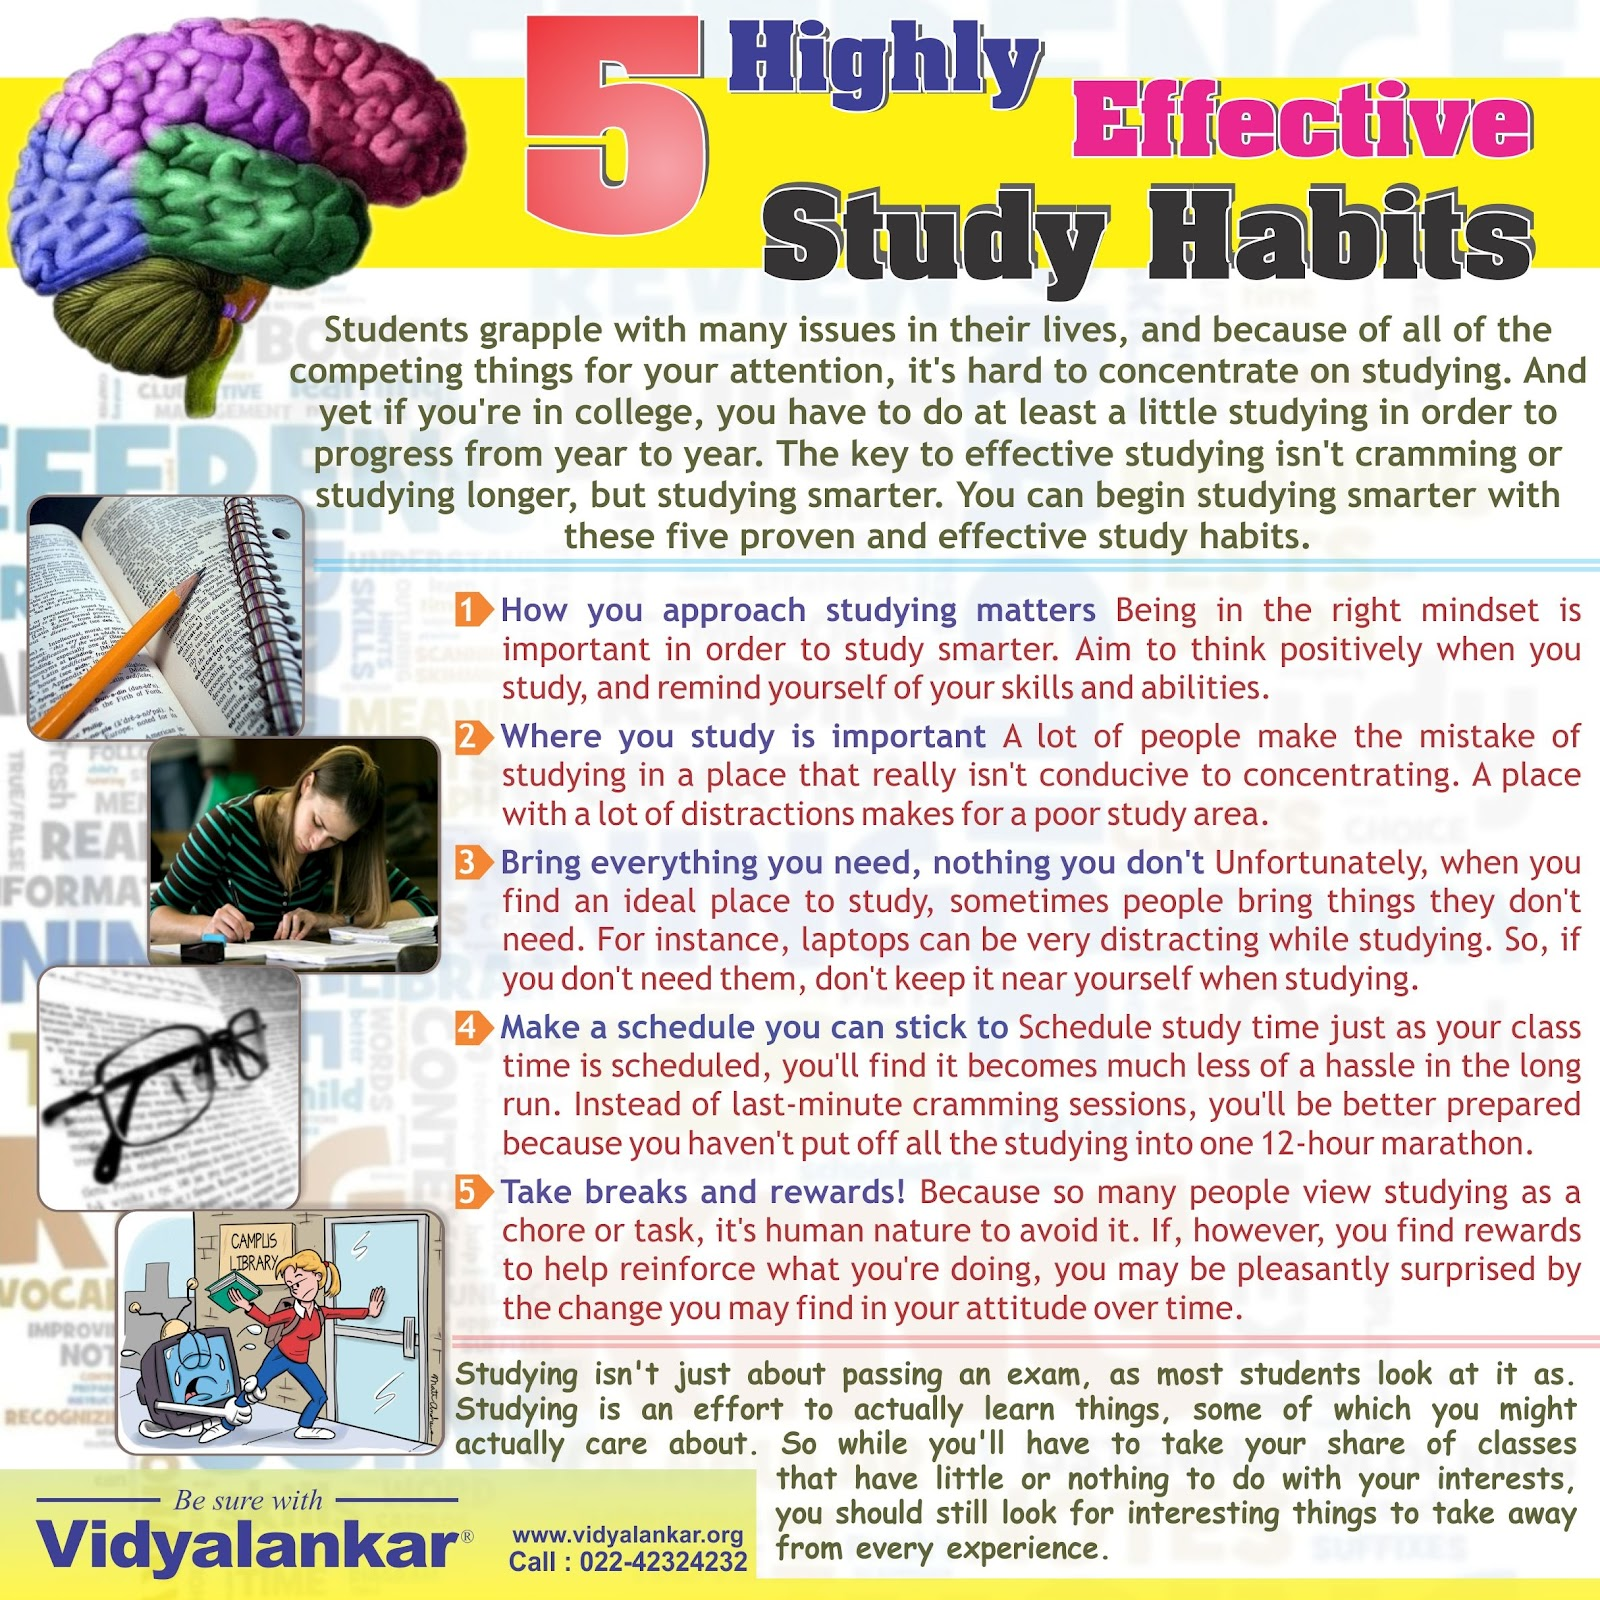 Essay on study habits